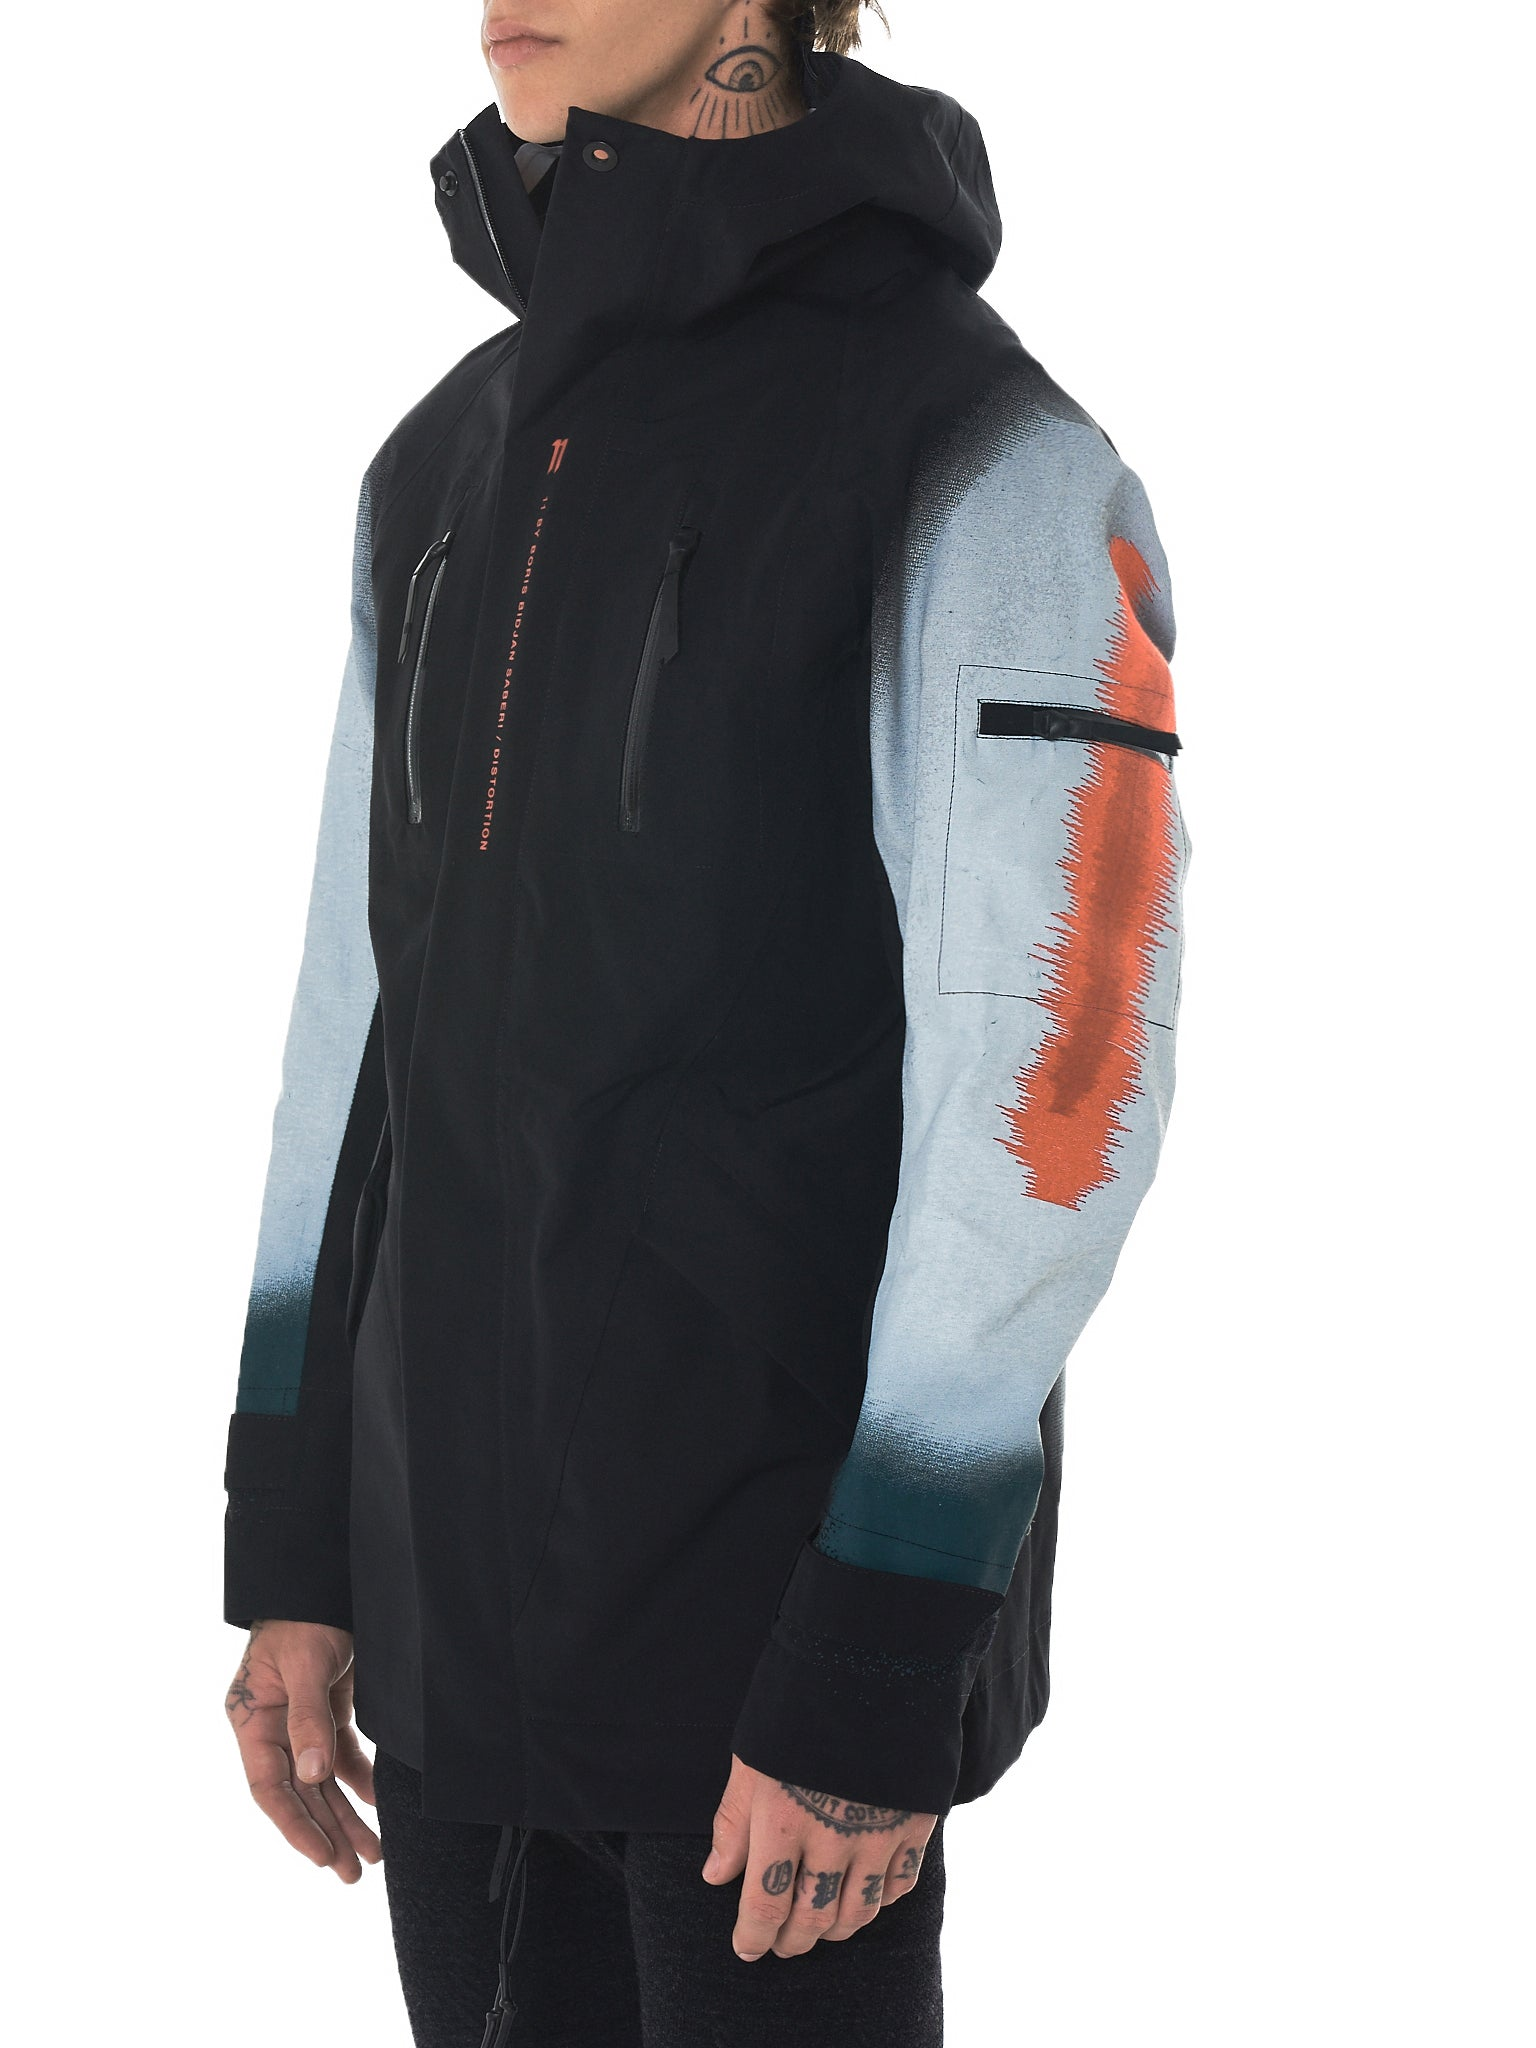 11 By Boris Bidjan Saberi Distortion Hooded Jacket - Hlorenzo Side